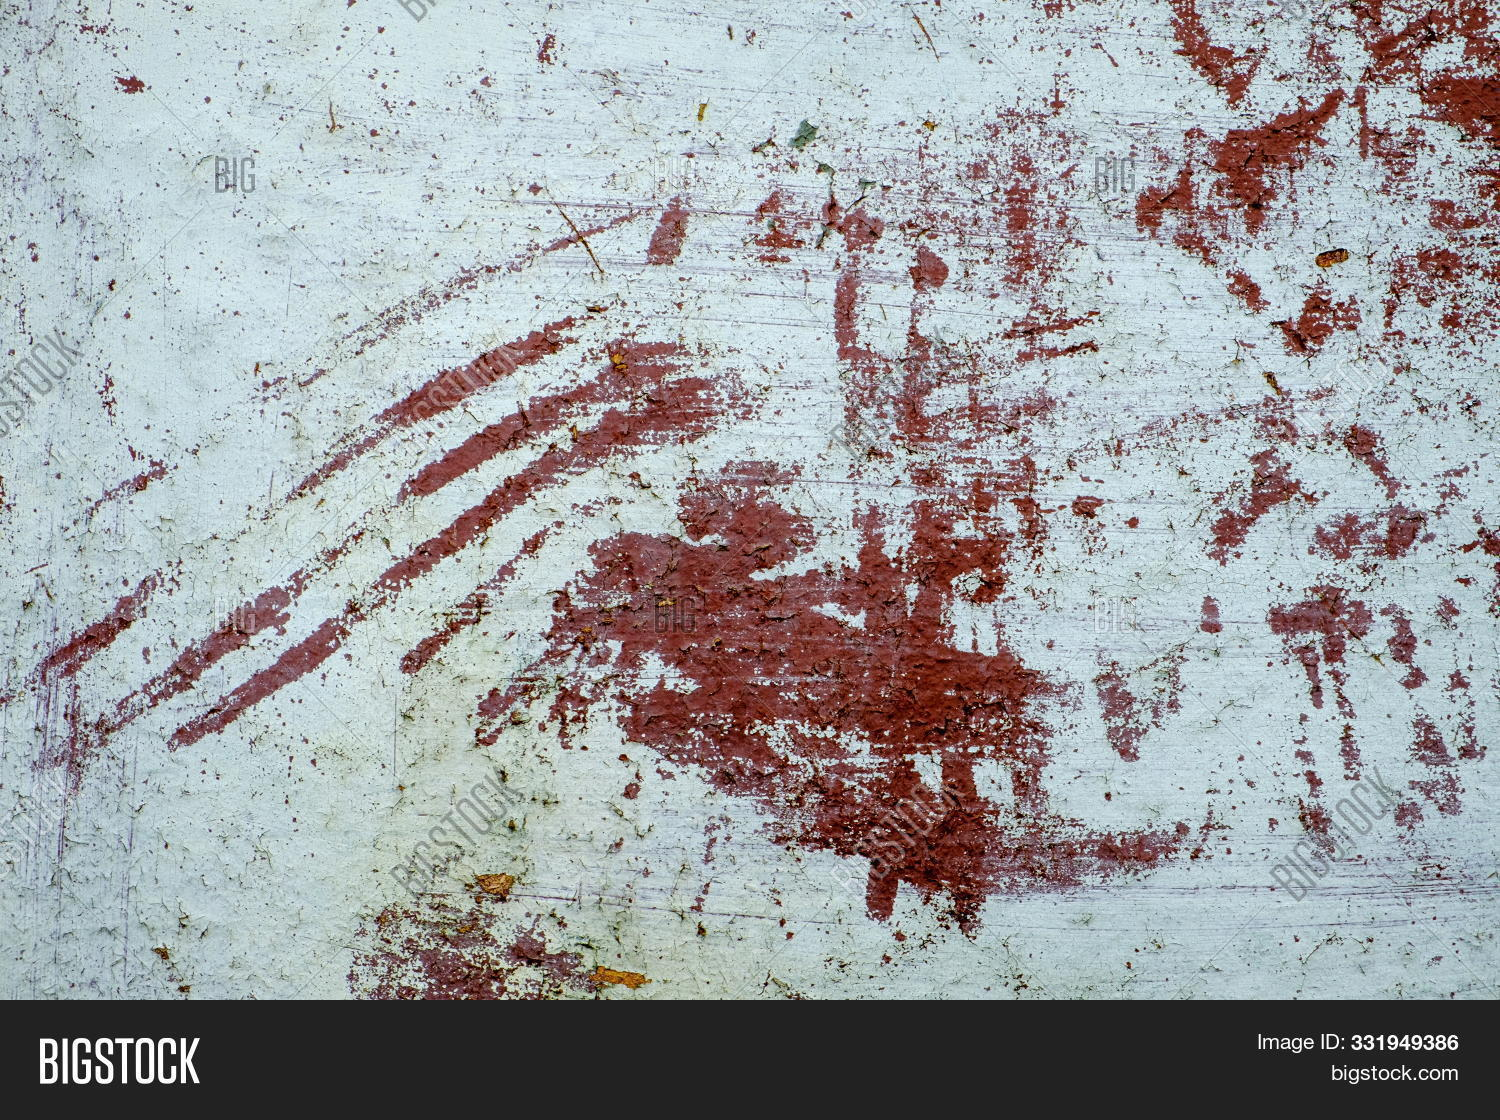 Rusty Metal Texture Image Photo Free Trial Bigstock The red bloody splatter background can be used in all kind of horror manipulations, perfect for halloween. rusty metal texture image photo free